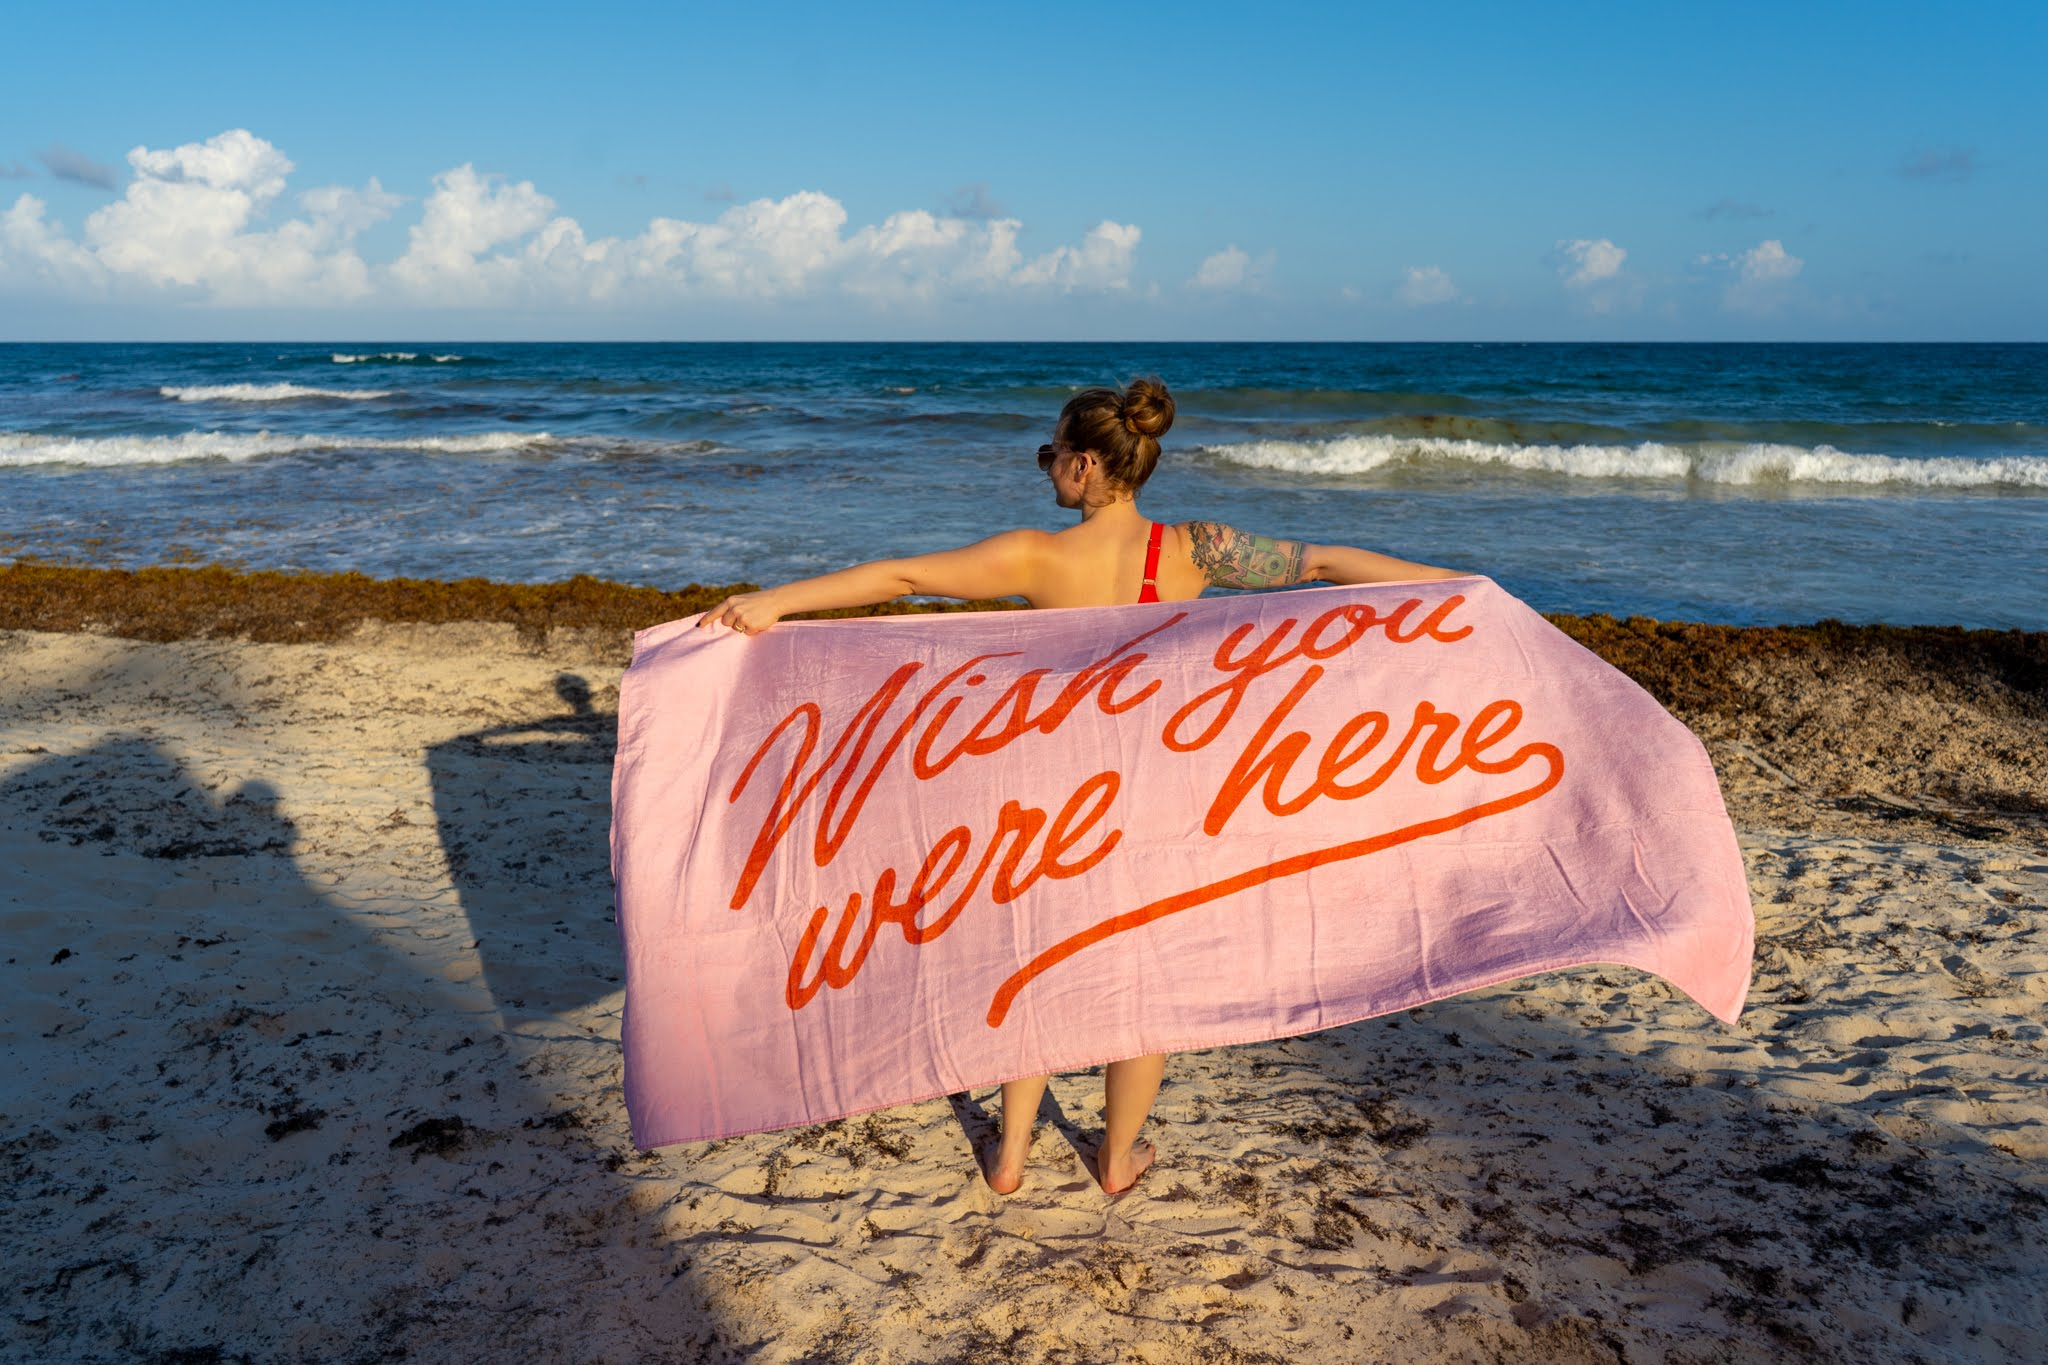 Uprooted-Traveler-Vegan-Weekend-in-Tulum-Mexico-beach-wish-you-were-here.jpg